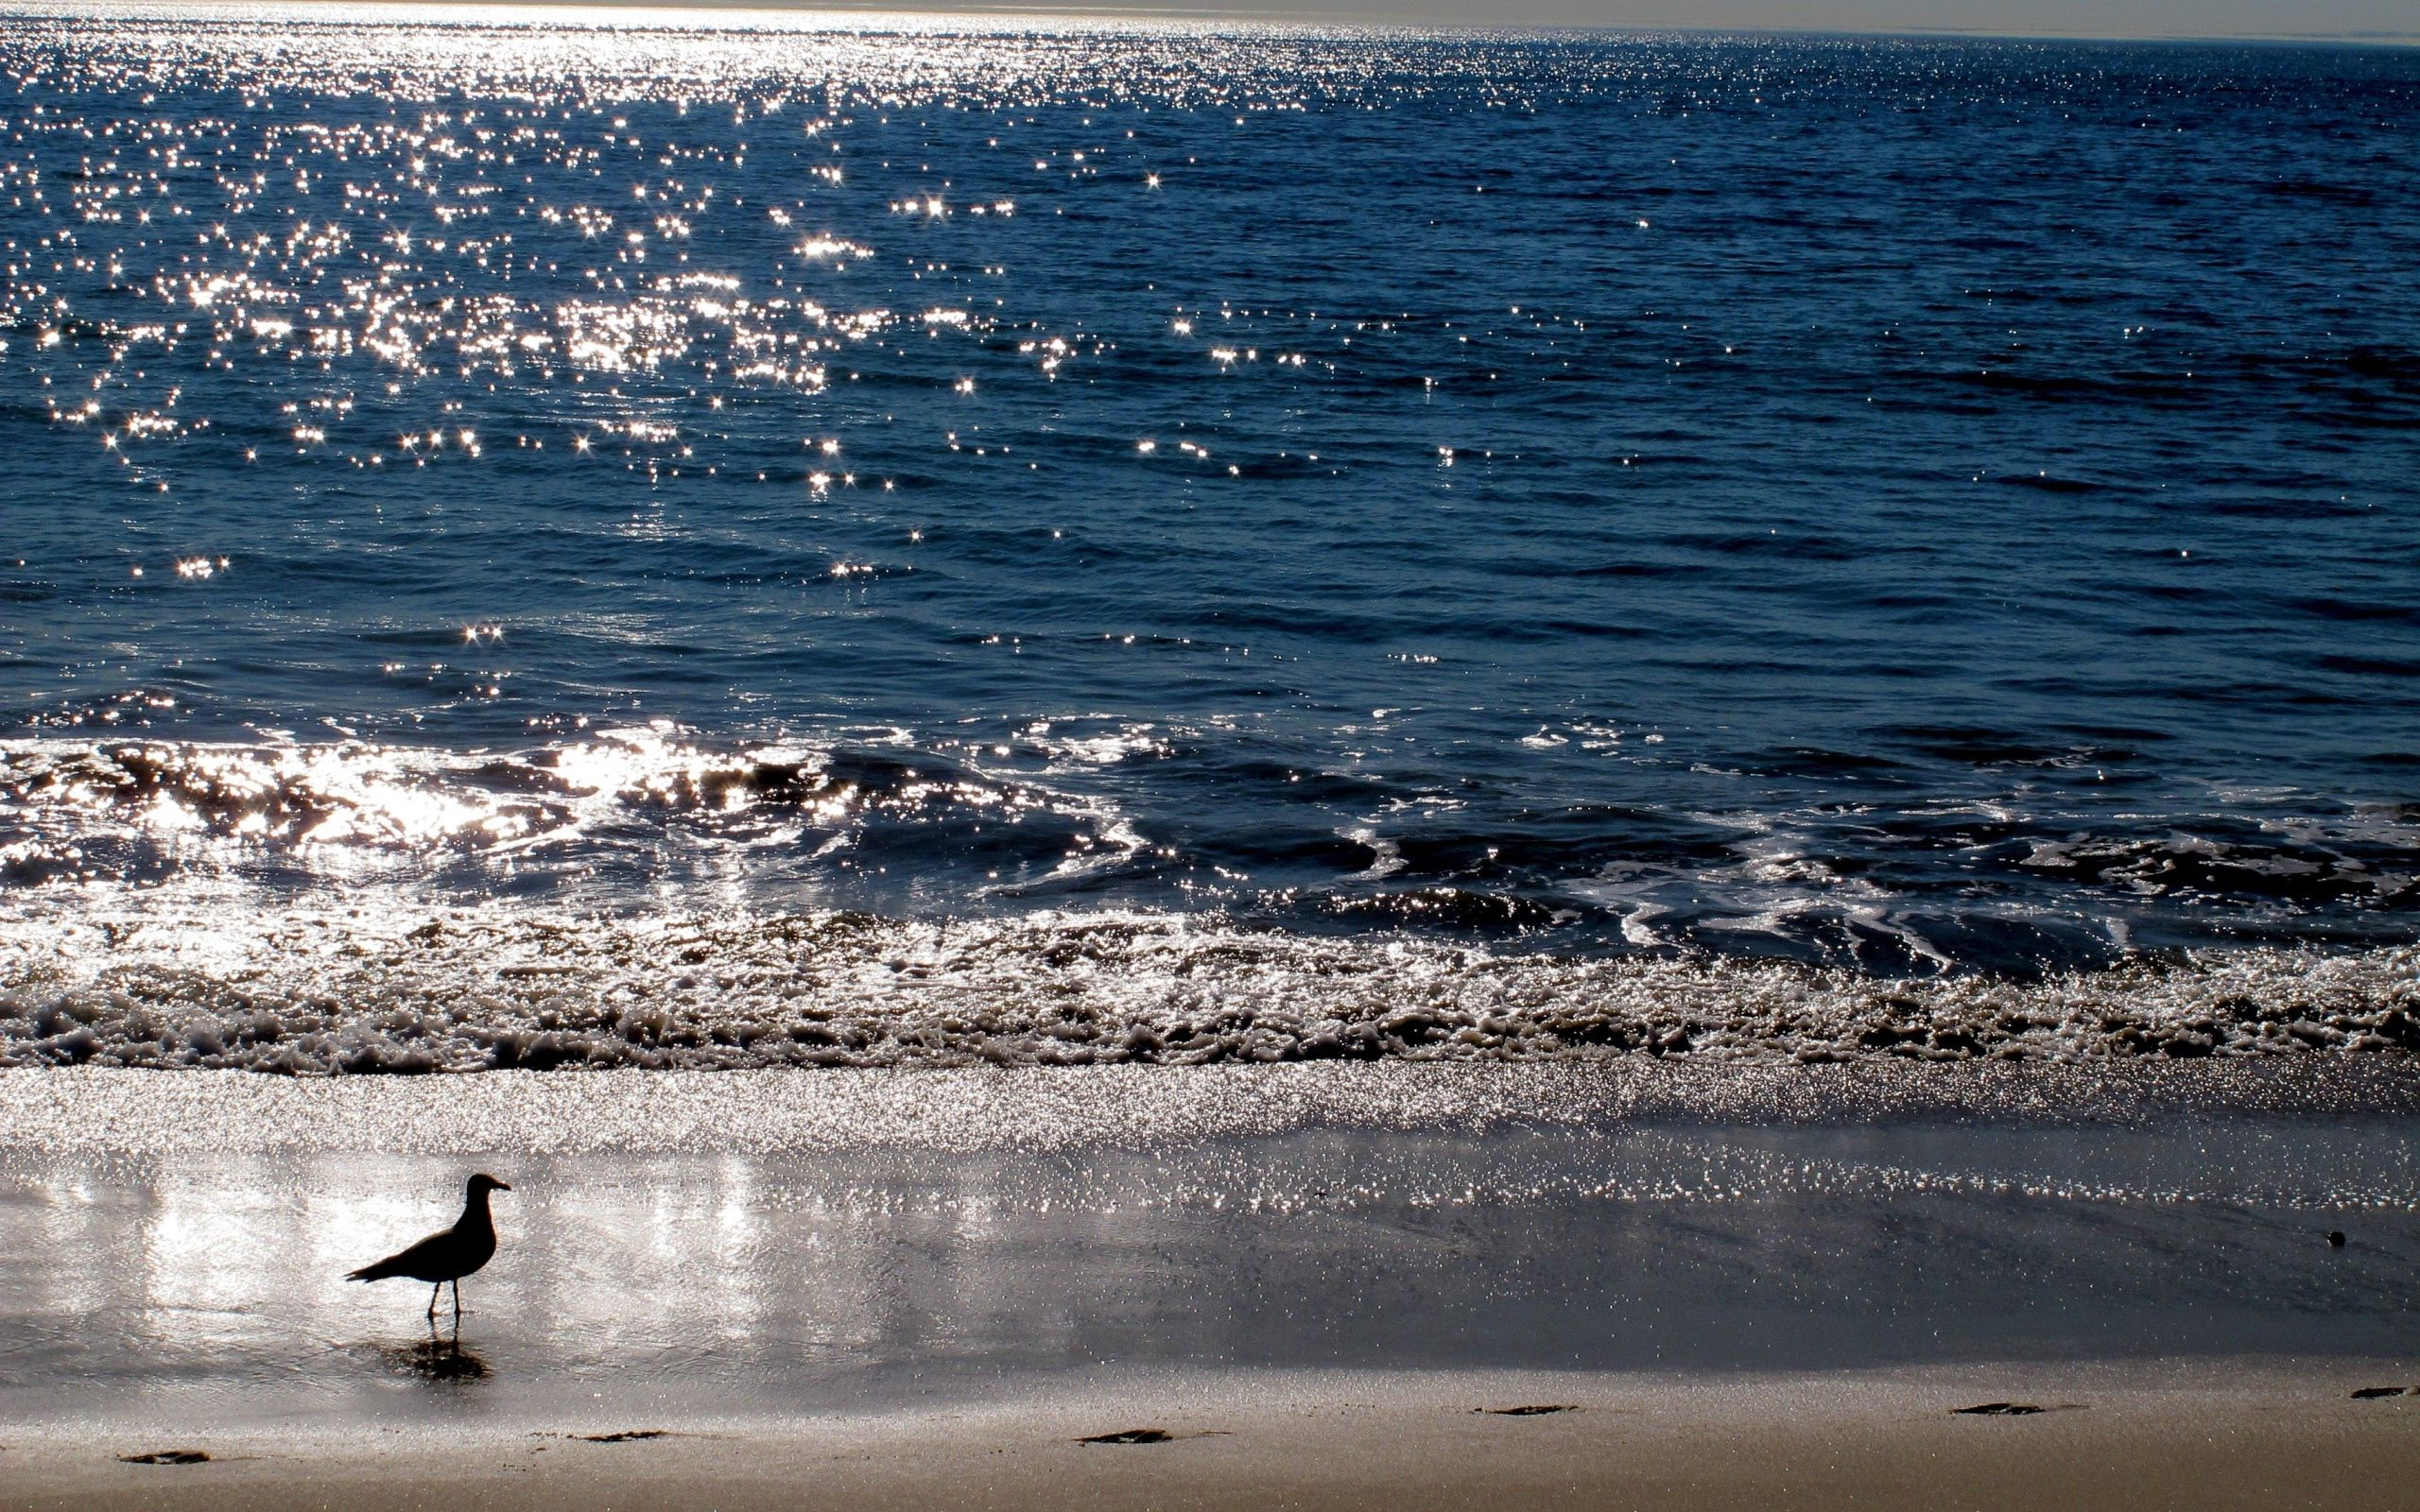 93932 download wallpaper Animals, Gull, Seagull, Sea, Sunset, Bird screensavers and pictures for free